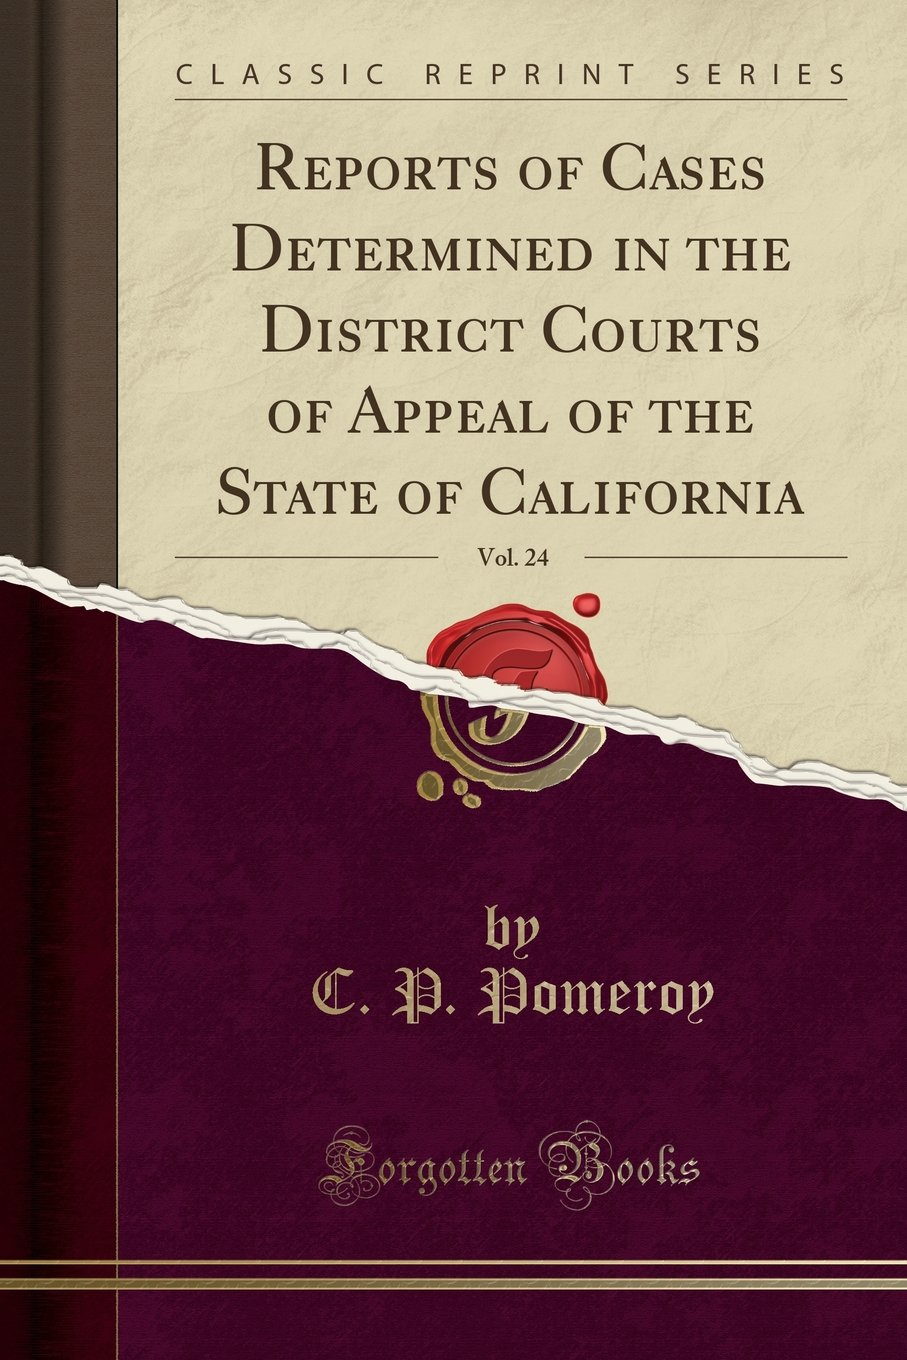 Reports of Cases Determined in the District Courts of Appeal of the State of California, Vol. 24 (Classic Reprint) pdf epub